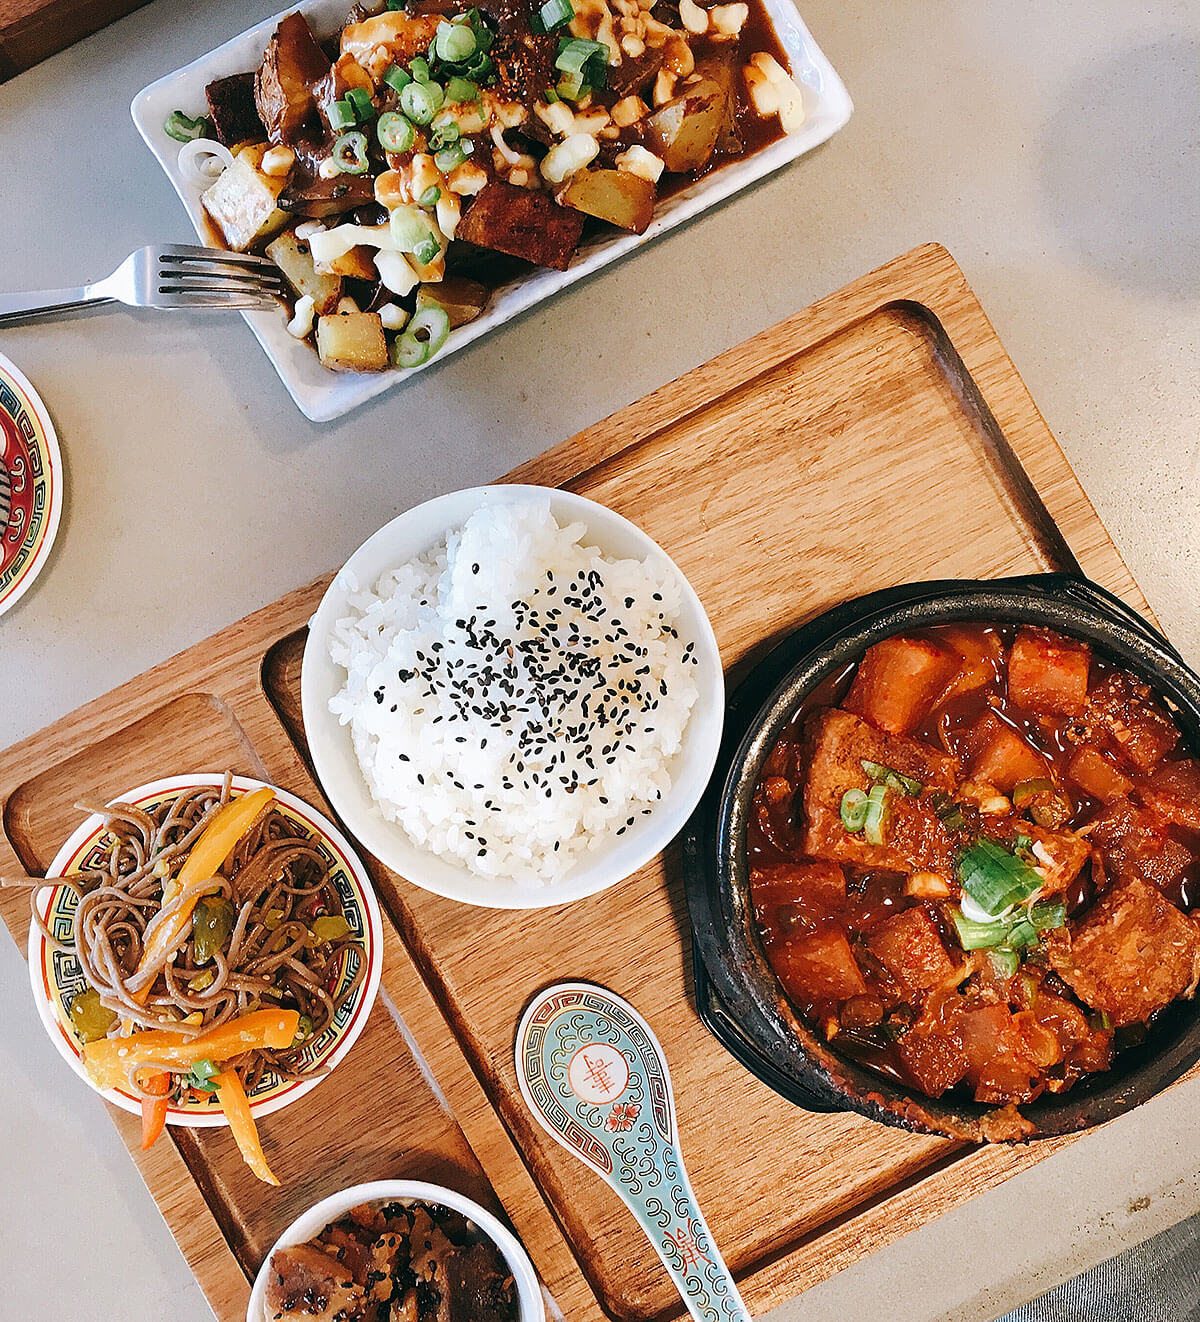 jiep-jiep-korean-restaurant-montreal © Will Travel for Food